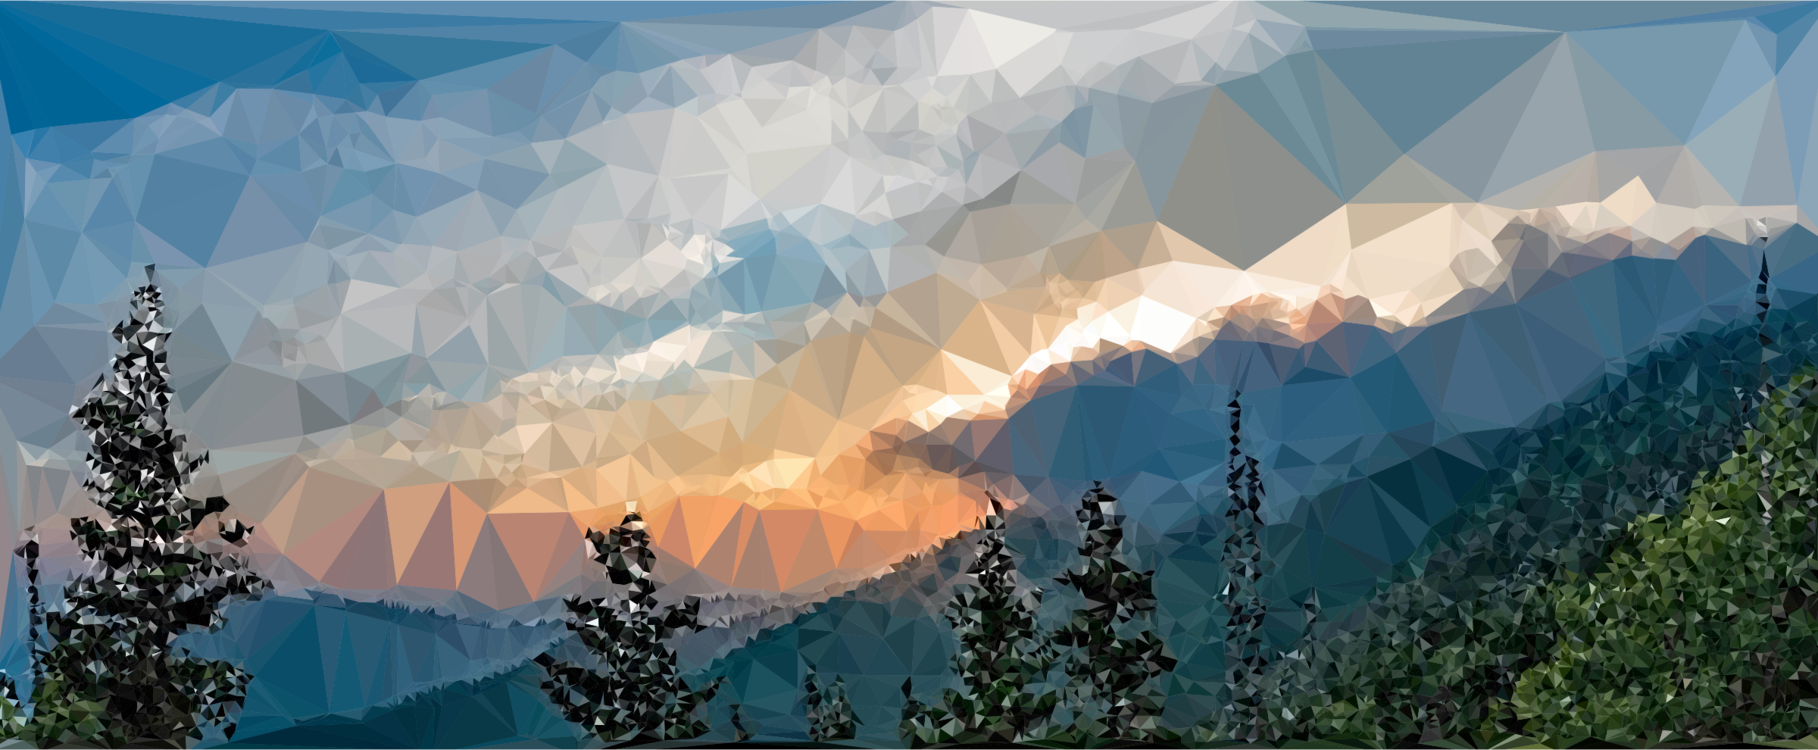 Mount Scenery Png - Wilderness,Terrain,Mount Scenery PNG Clipart - Royalty Free SVG / PNG